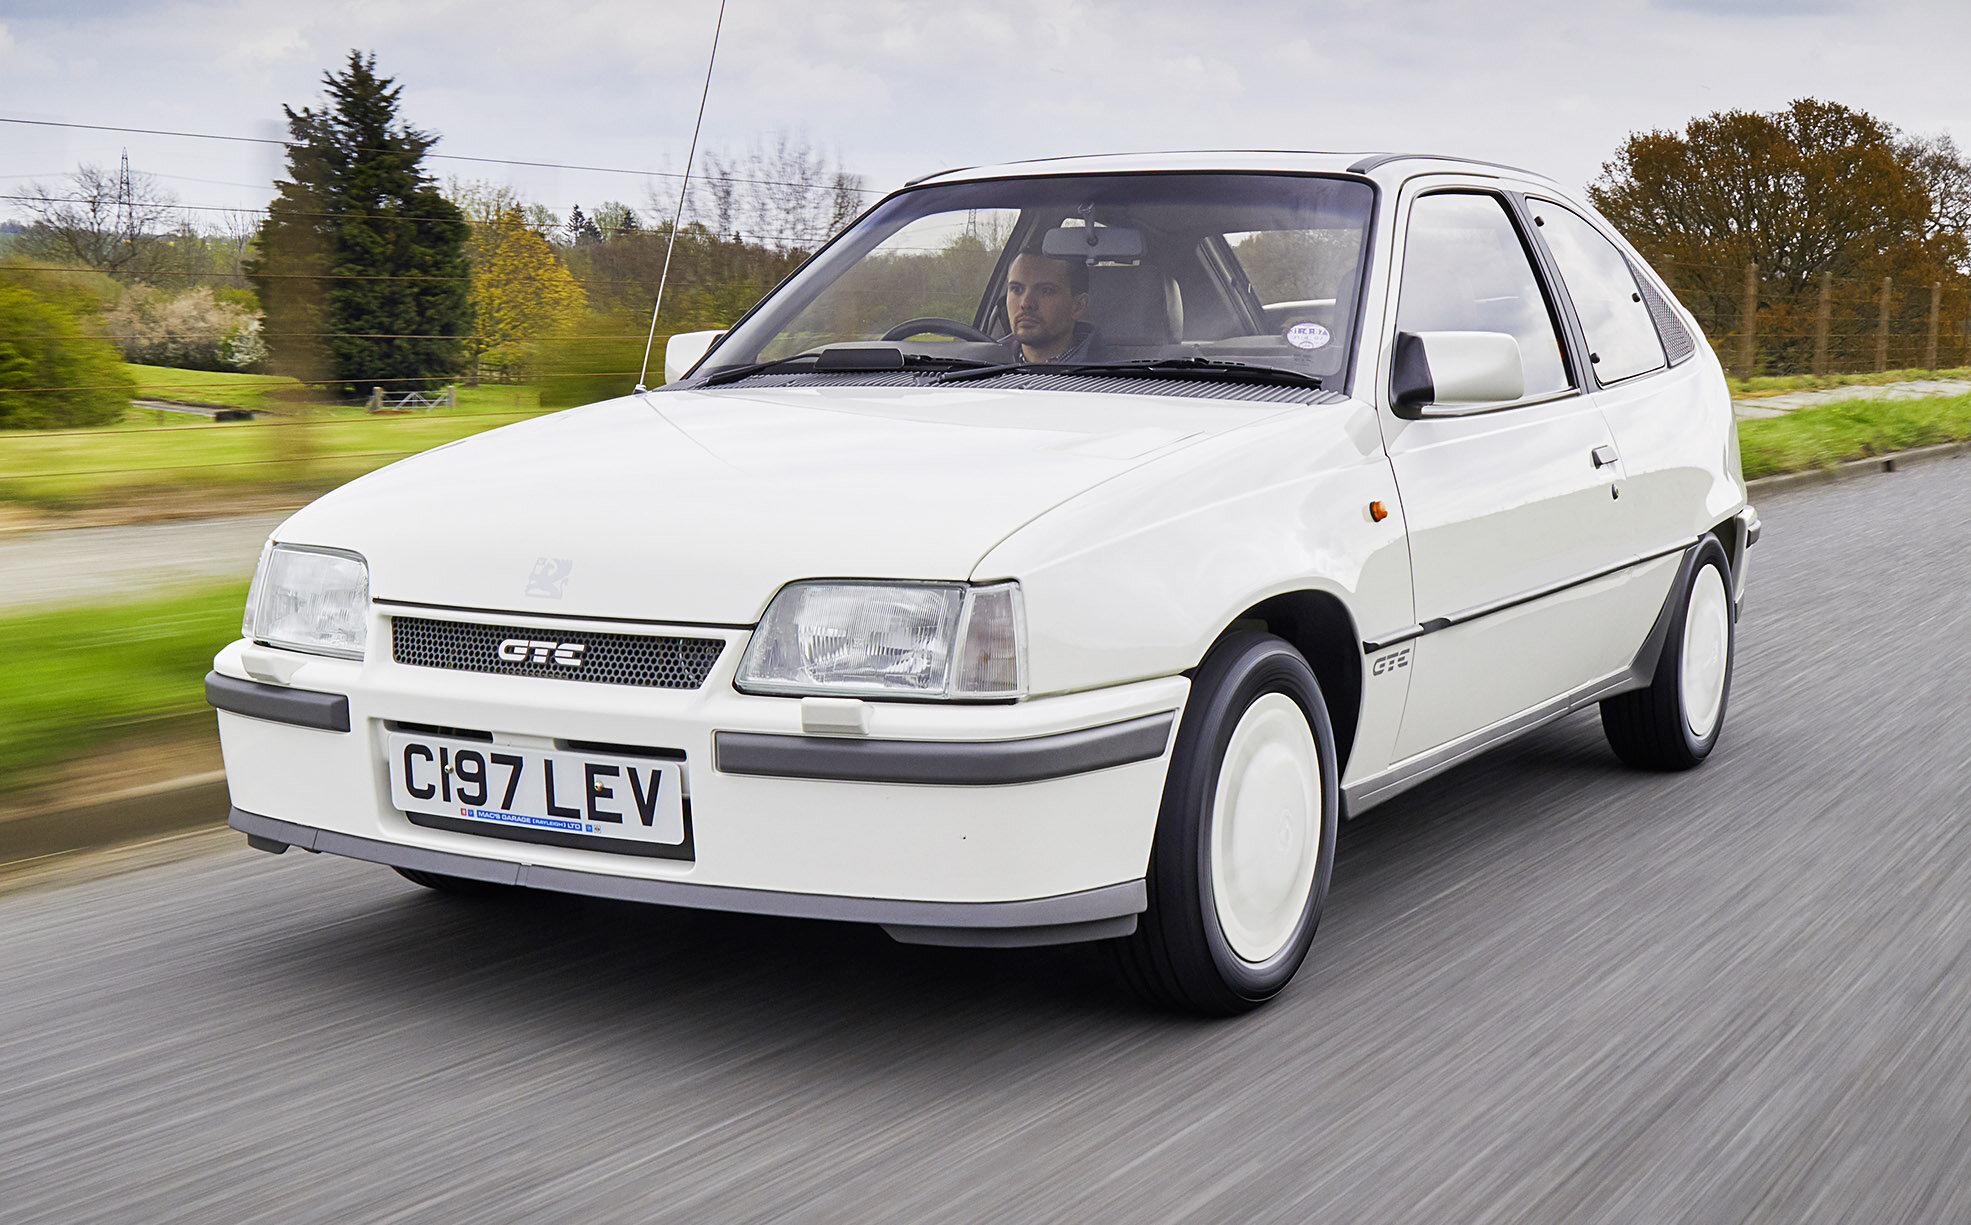 Rob Hall's first restoration project was a Granada MkII, which he completed in 2004 when he was just 17. Since then he has had a string of projects bearing the blue oval including a Fiesta Mk1 and various Granada MkIIs, but when offered this 51,000-mile Vauxhall Astra GTE that had slumbered in a garage for 20 years, he knew he couldn't pass it up. 'I'm an electronic engineer at a local audio company and, one day at work, was talking cars with my colleague Terry Bateman when he mentioned the Astra that had been slowly gathering dust in his garage. Terry had put the car away after he got a company car, but couldn't bear to part with it as it held special memories for him. It was the car in which he'd driven both his children home from hospital. Their first car ride.'  Knowing that Rob was into classics, Terry offered to give him the GTE if I promised to give it the restoration it deserved. The more he looked at it, the more he realised that what this car would require something really special…